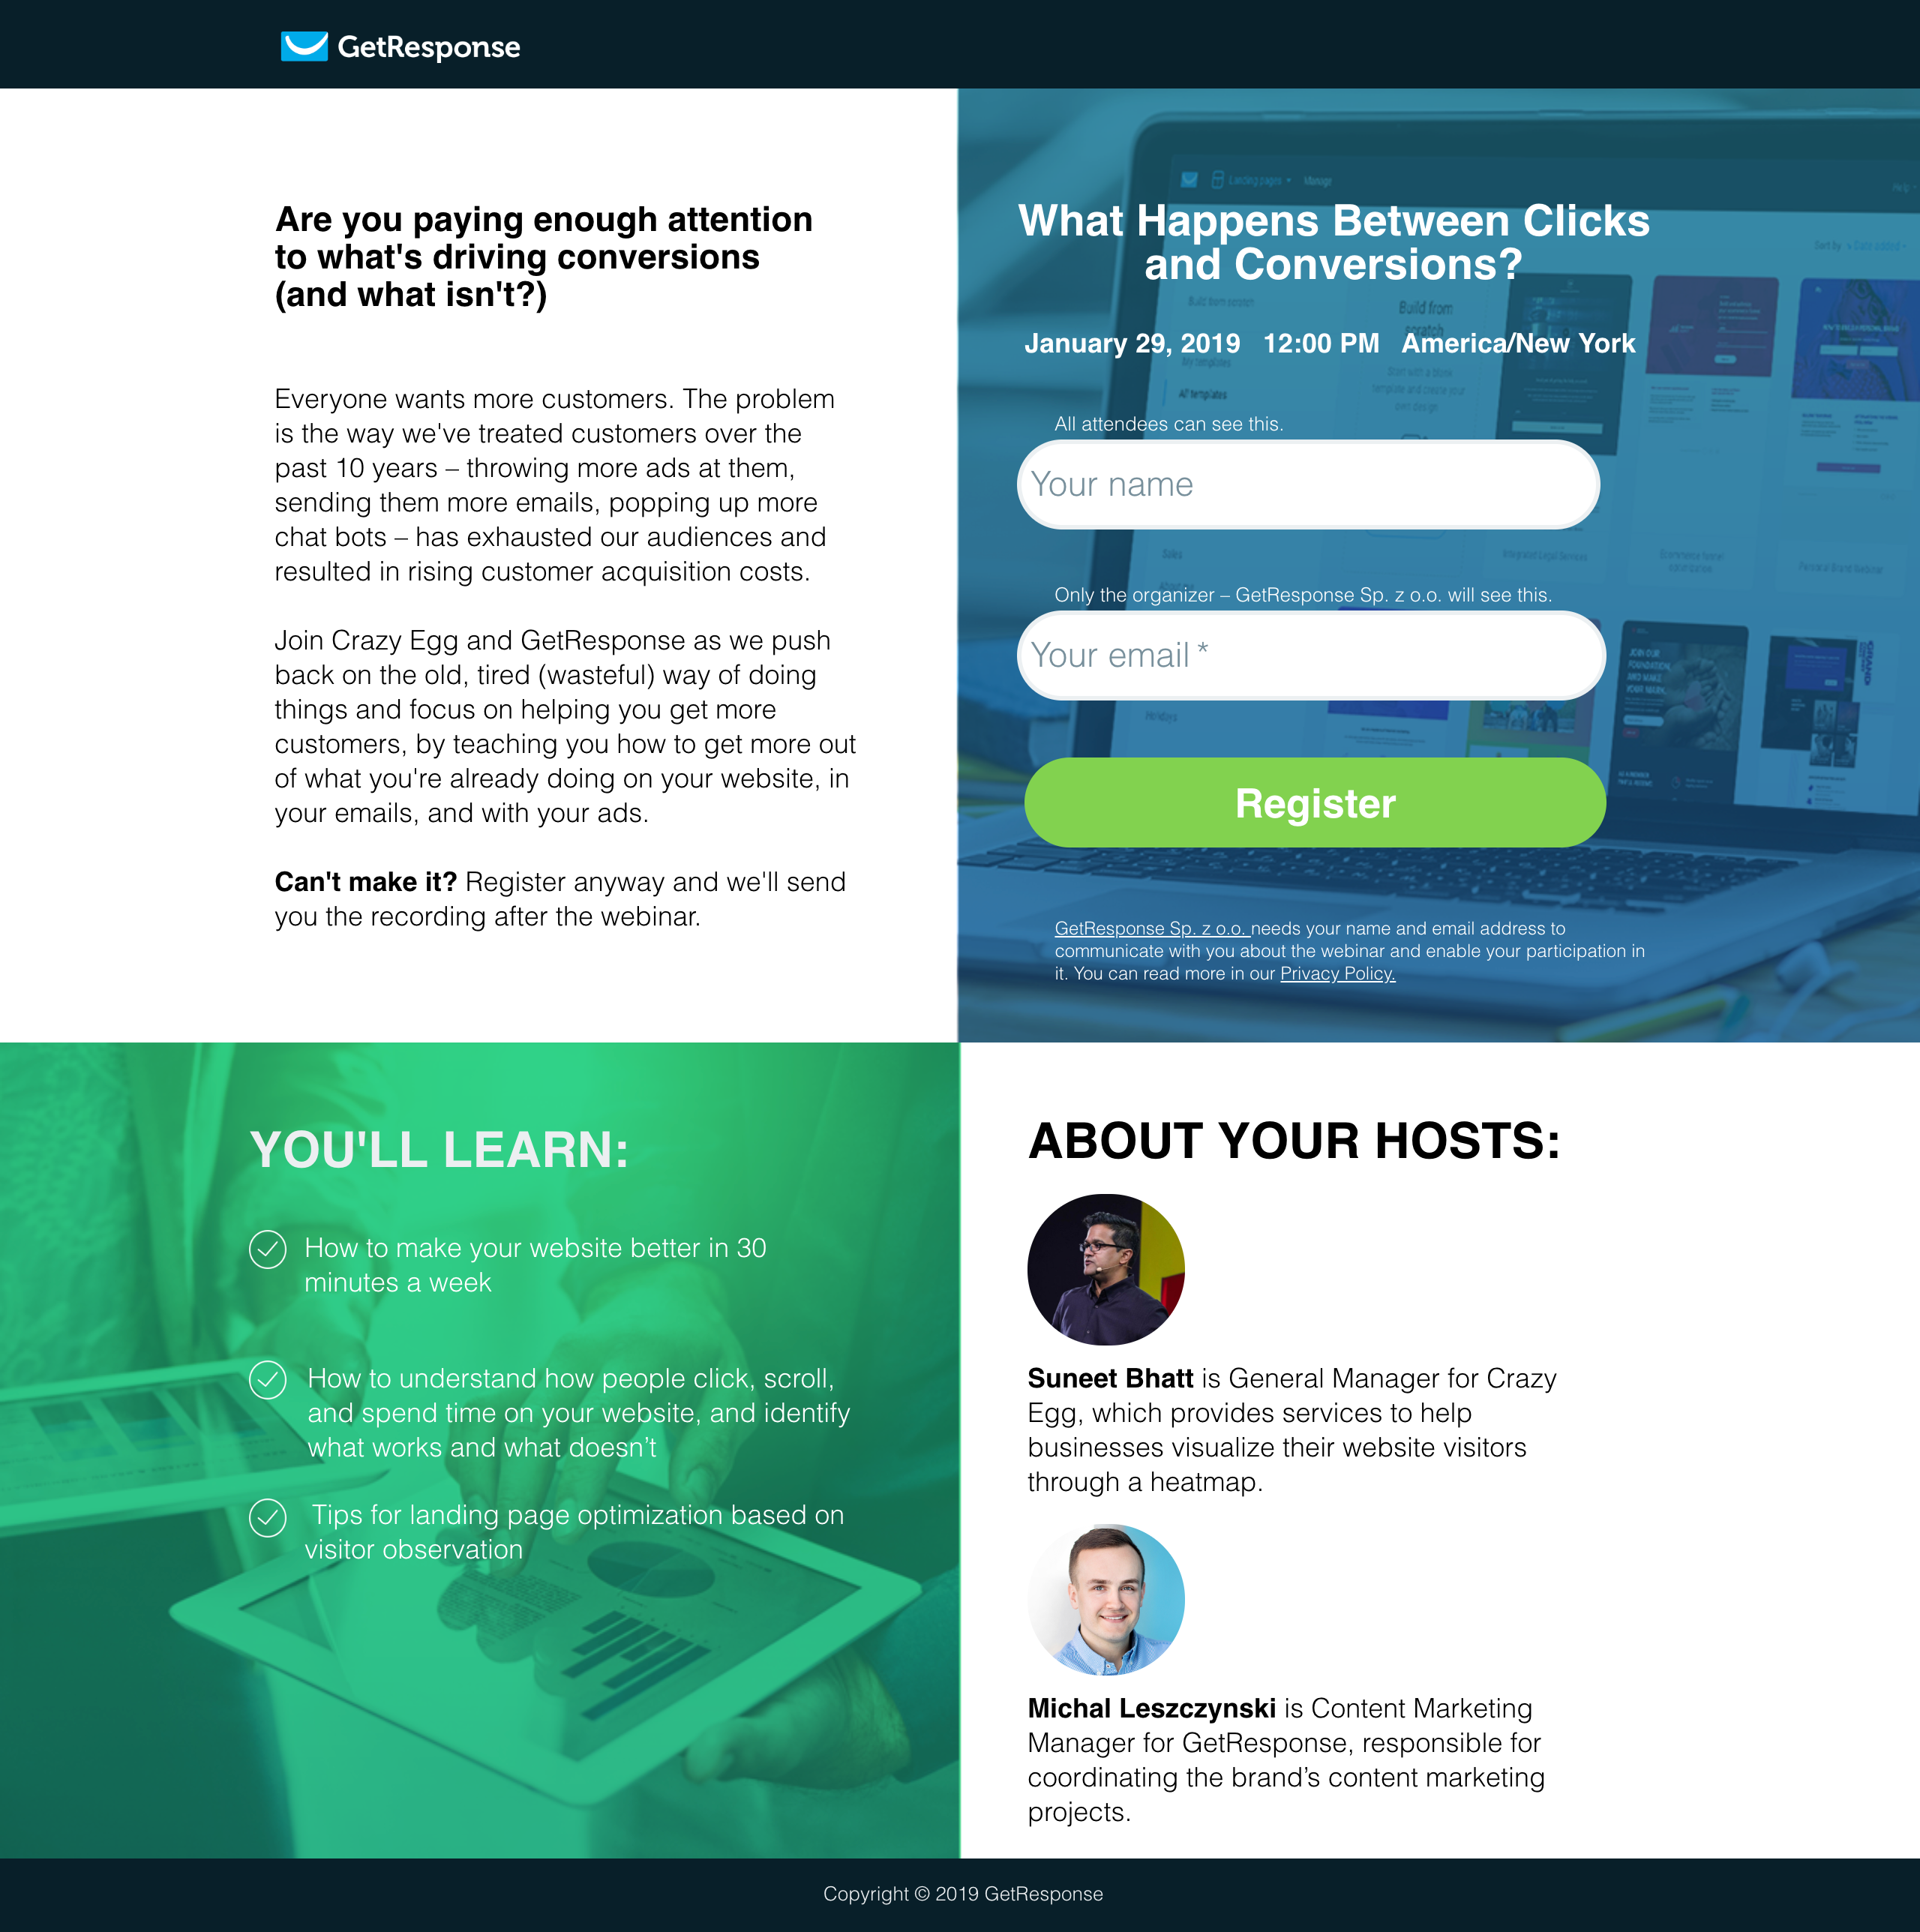 A webinar signup landing page.